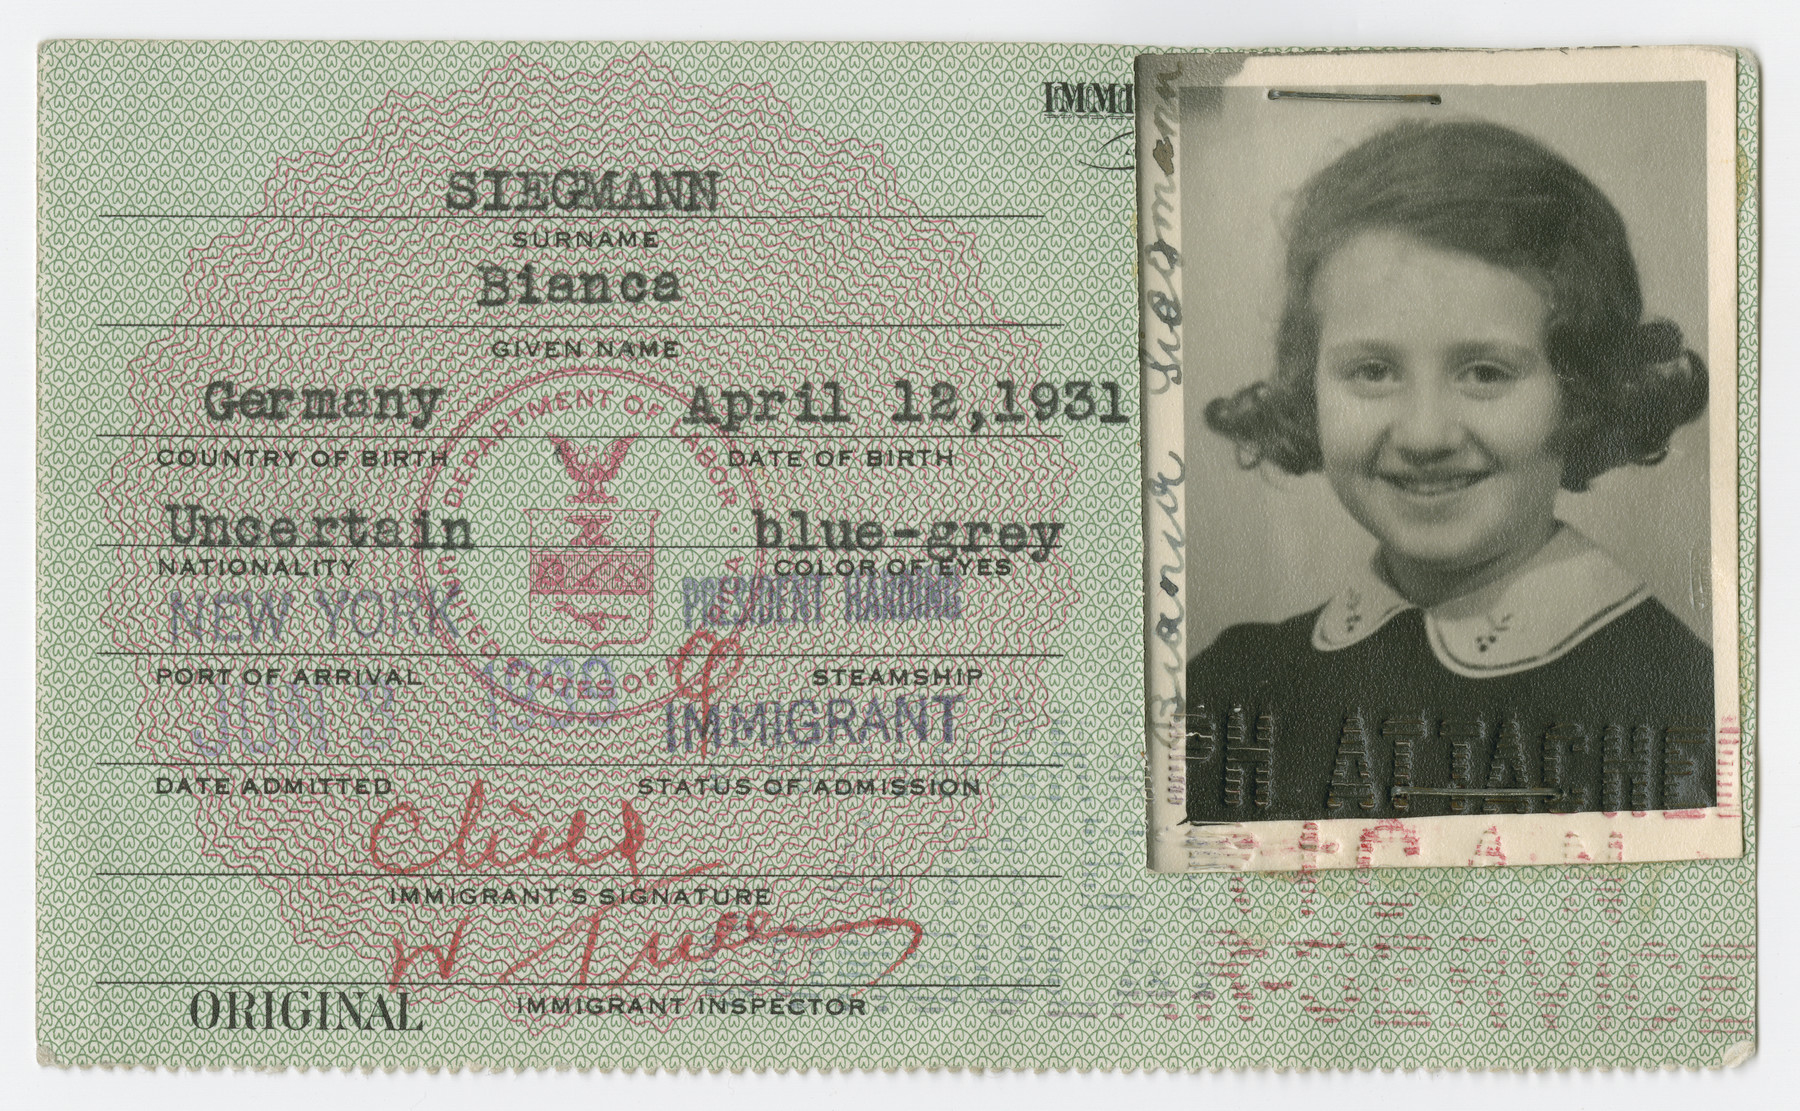 United States Immigrant Identification Card issued to Bianca Siegmann.  It states she was born in Germany though she was born in Vienna.